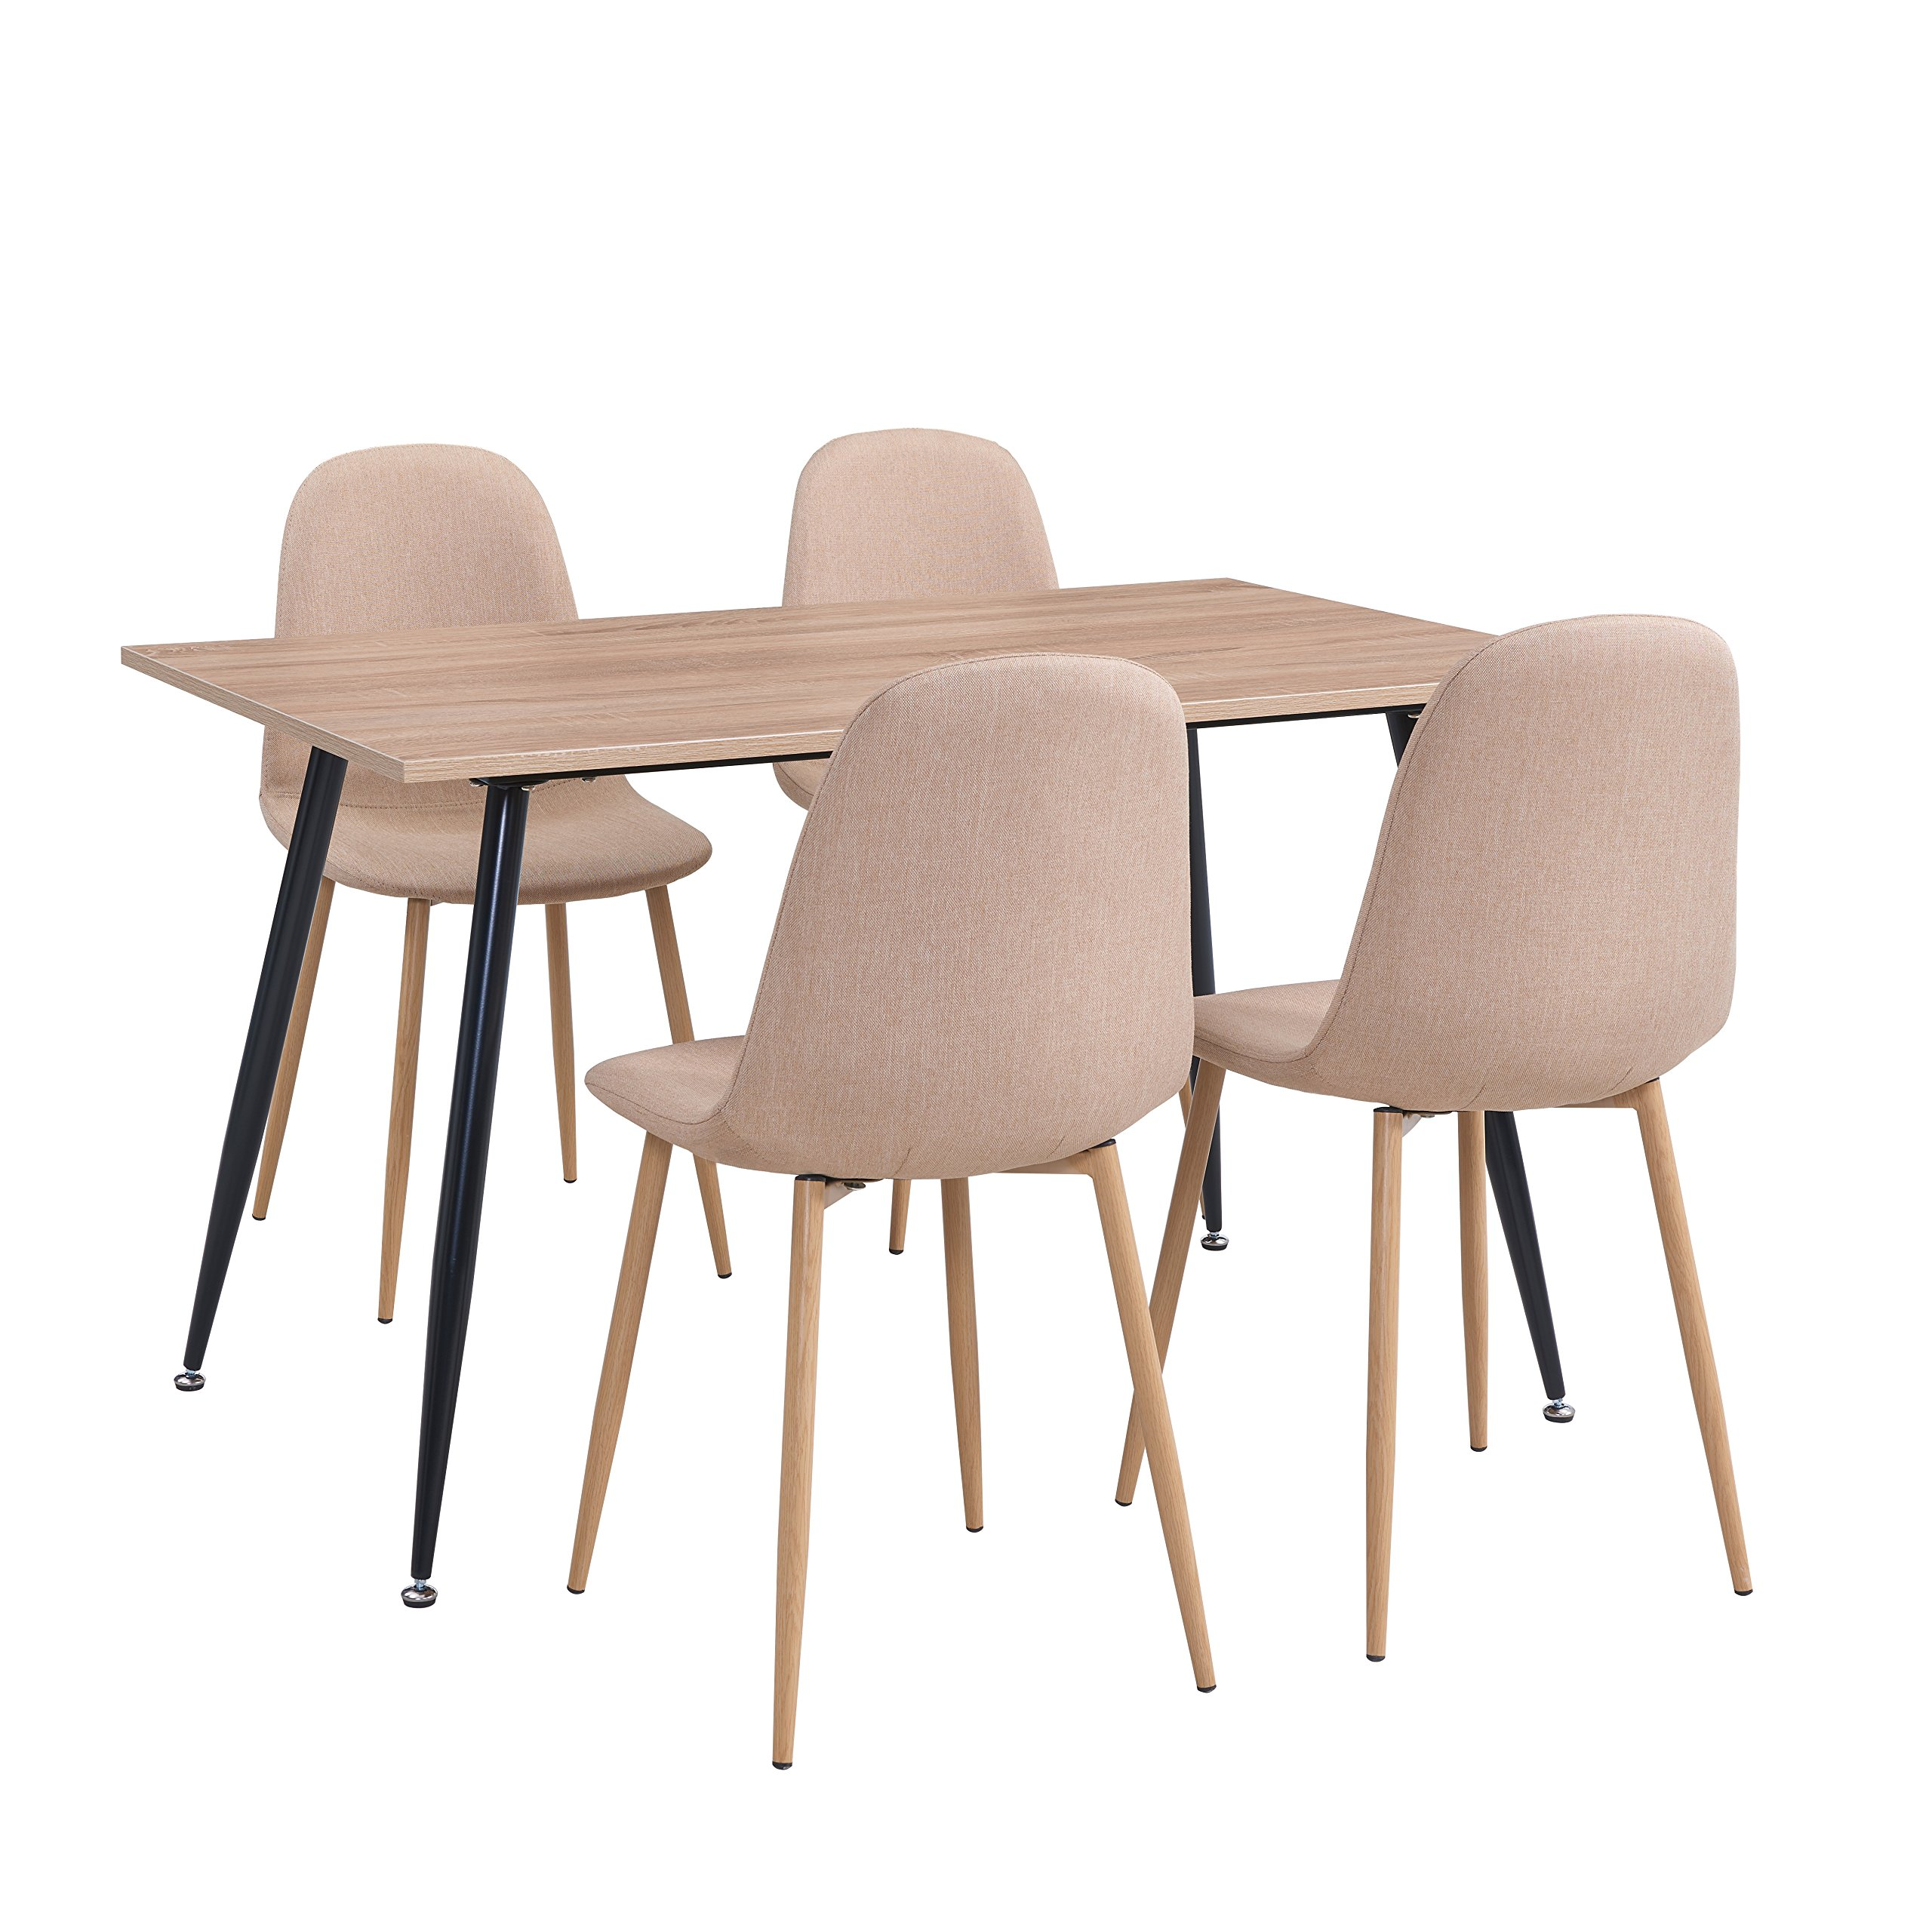 Ids Home Kitchen Dining Room Chair Set For 6 People Wooden Look Pattern Dining Table Side Chairs With Fabric Cushion Seat